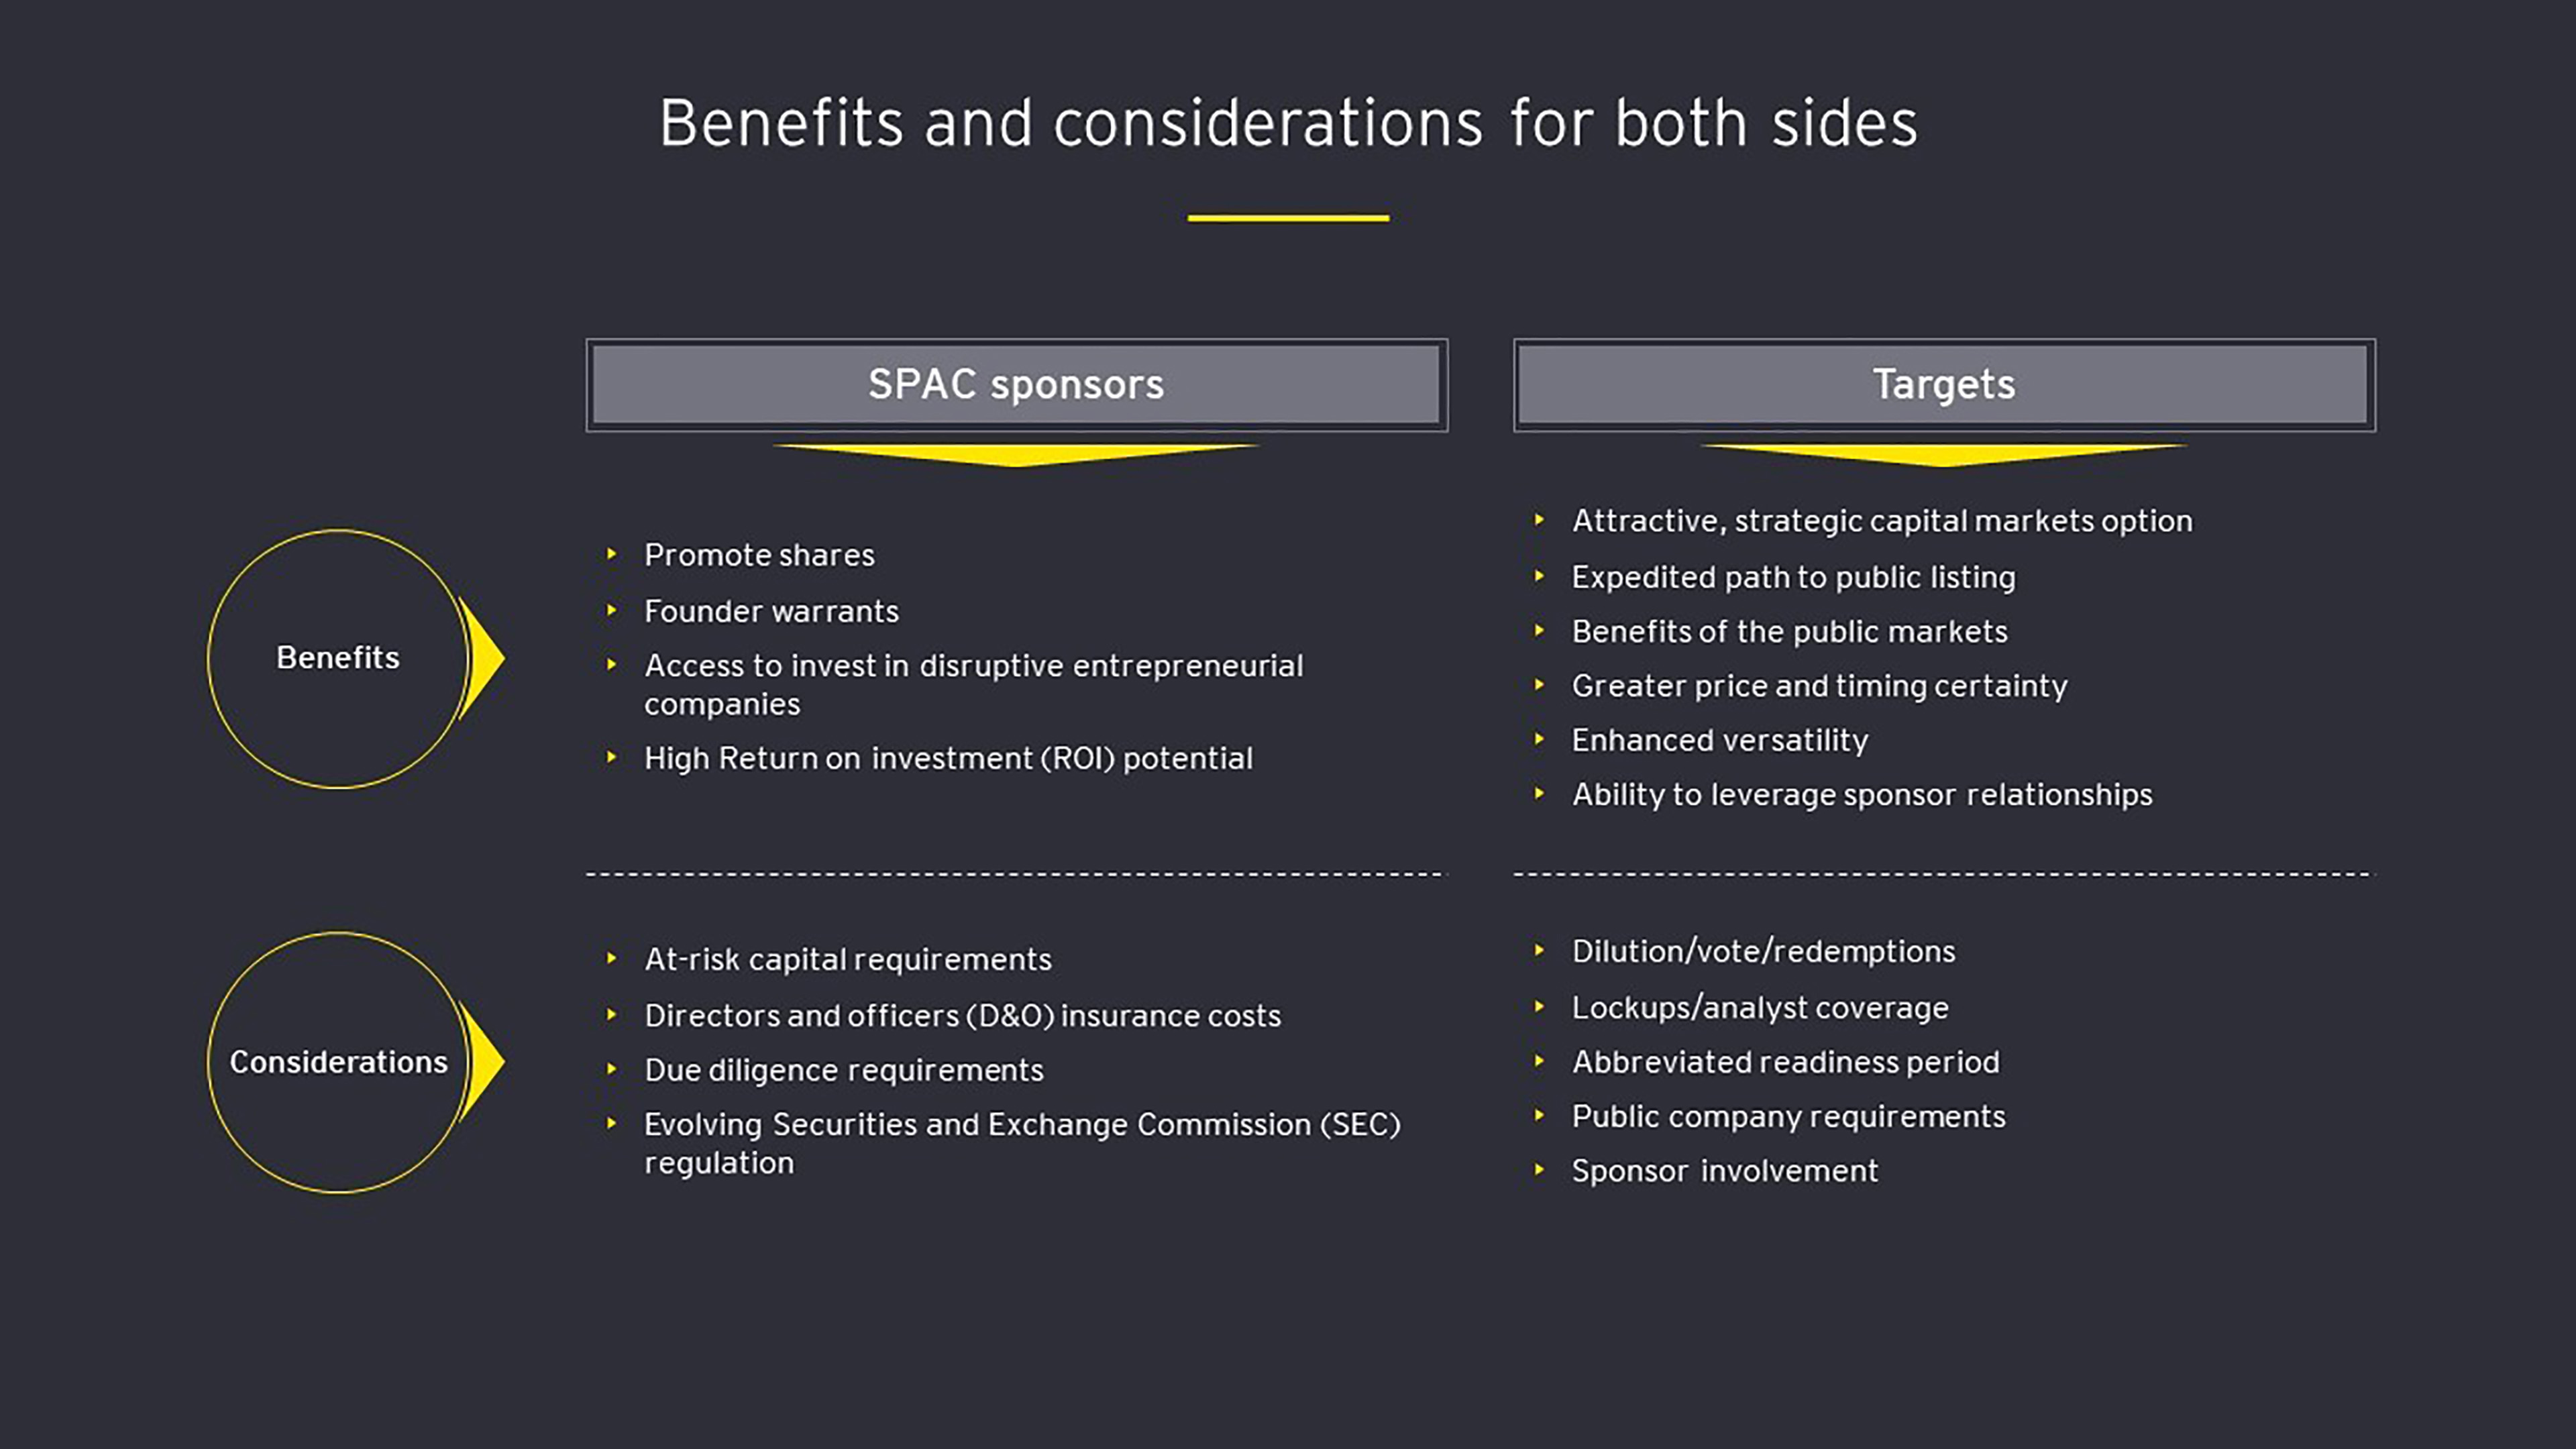 EY -  Benefits and considerations for both sides